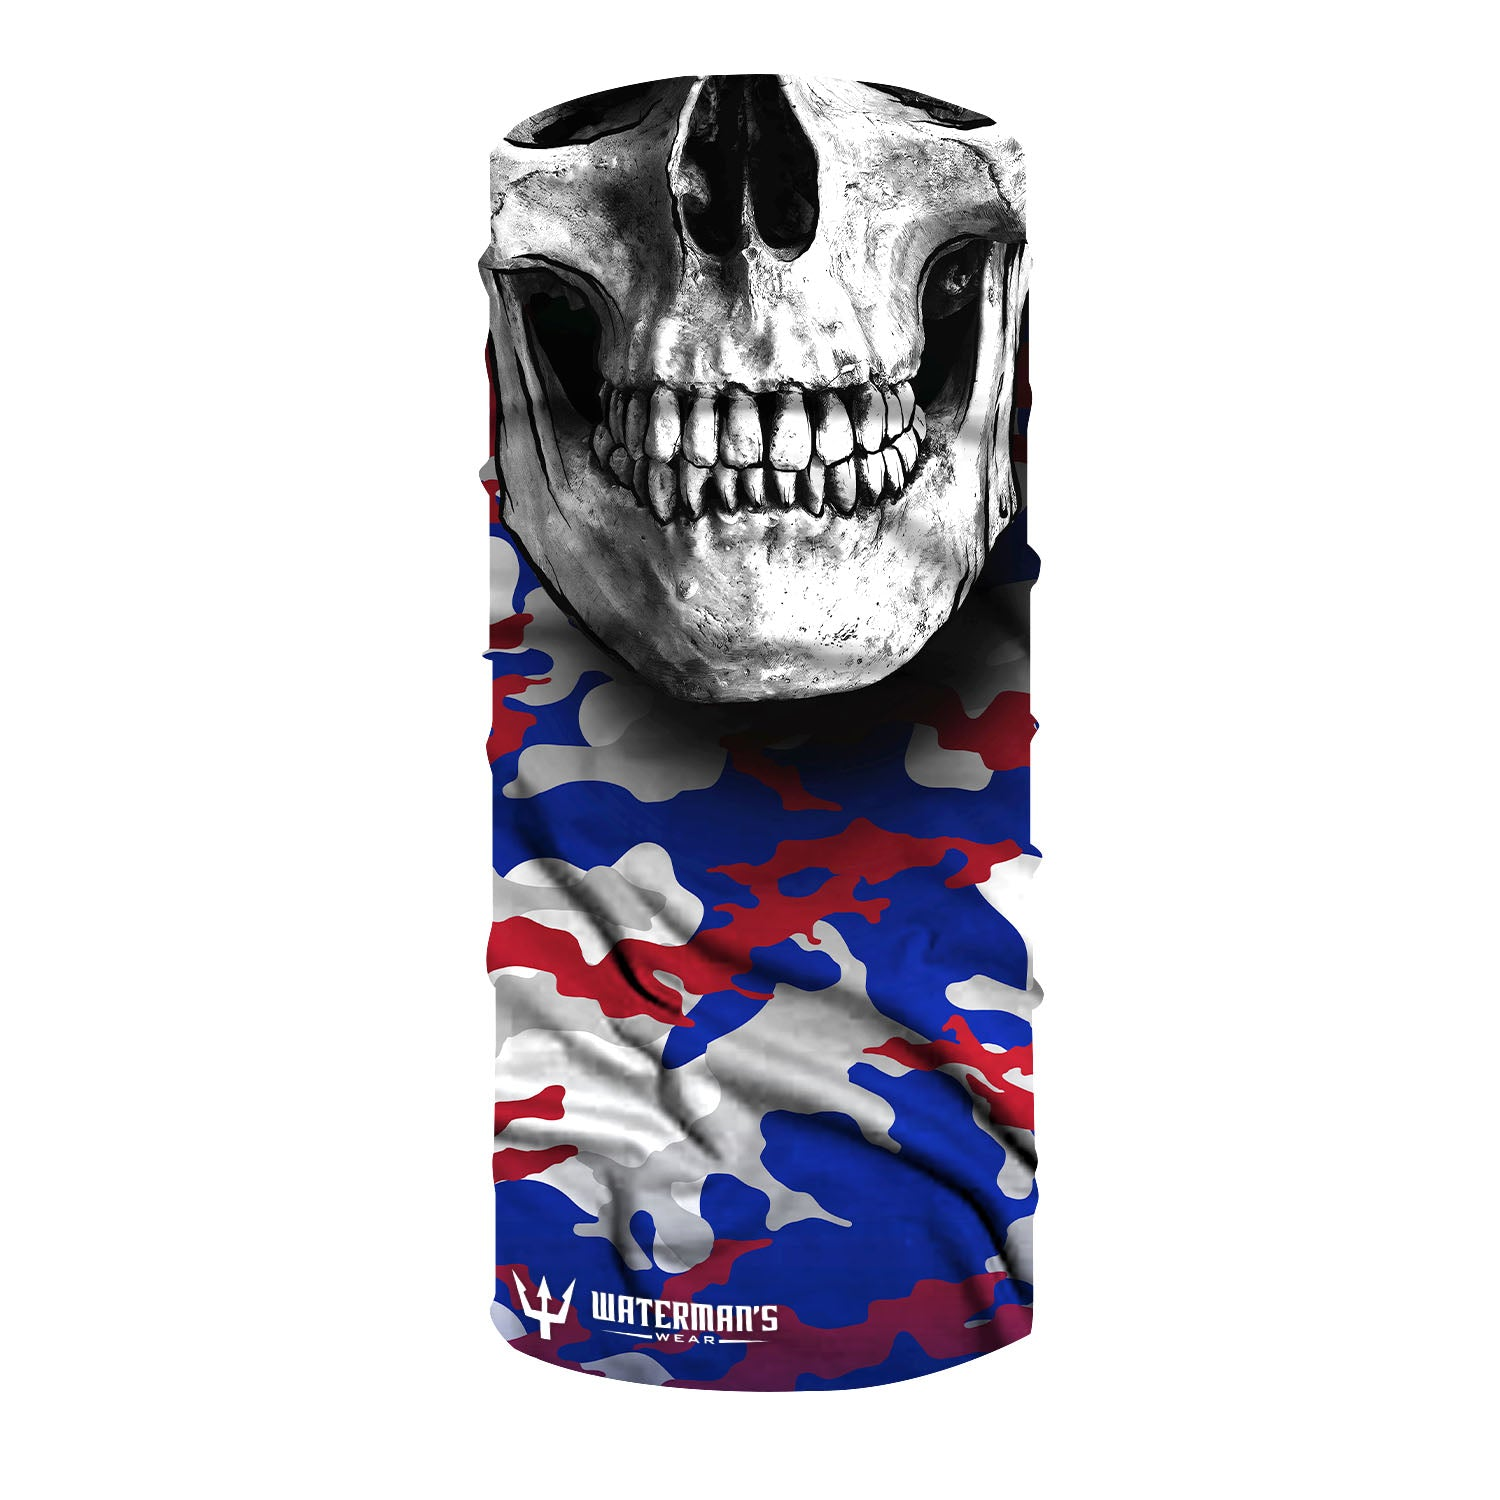 Waterman's Wear Patriot Camo Skull UPF50 Face Mask